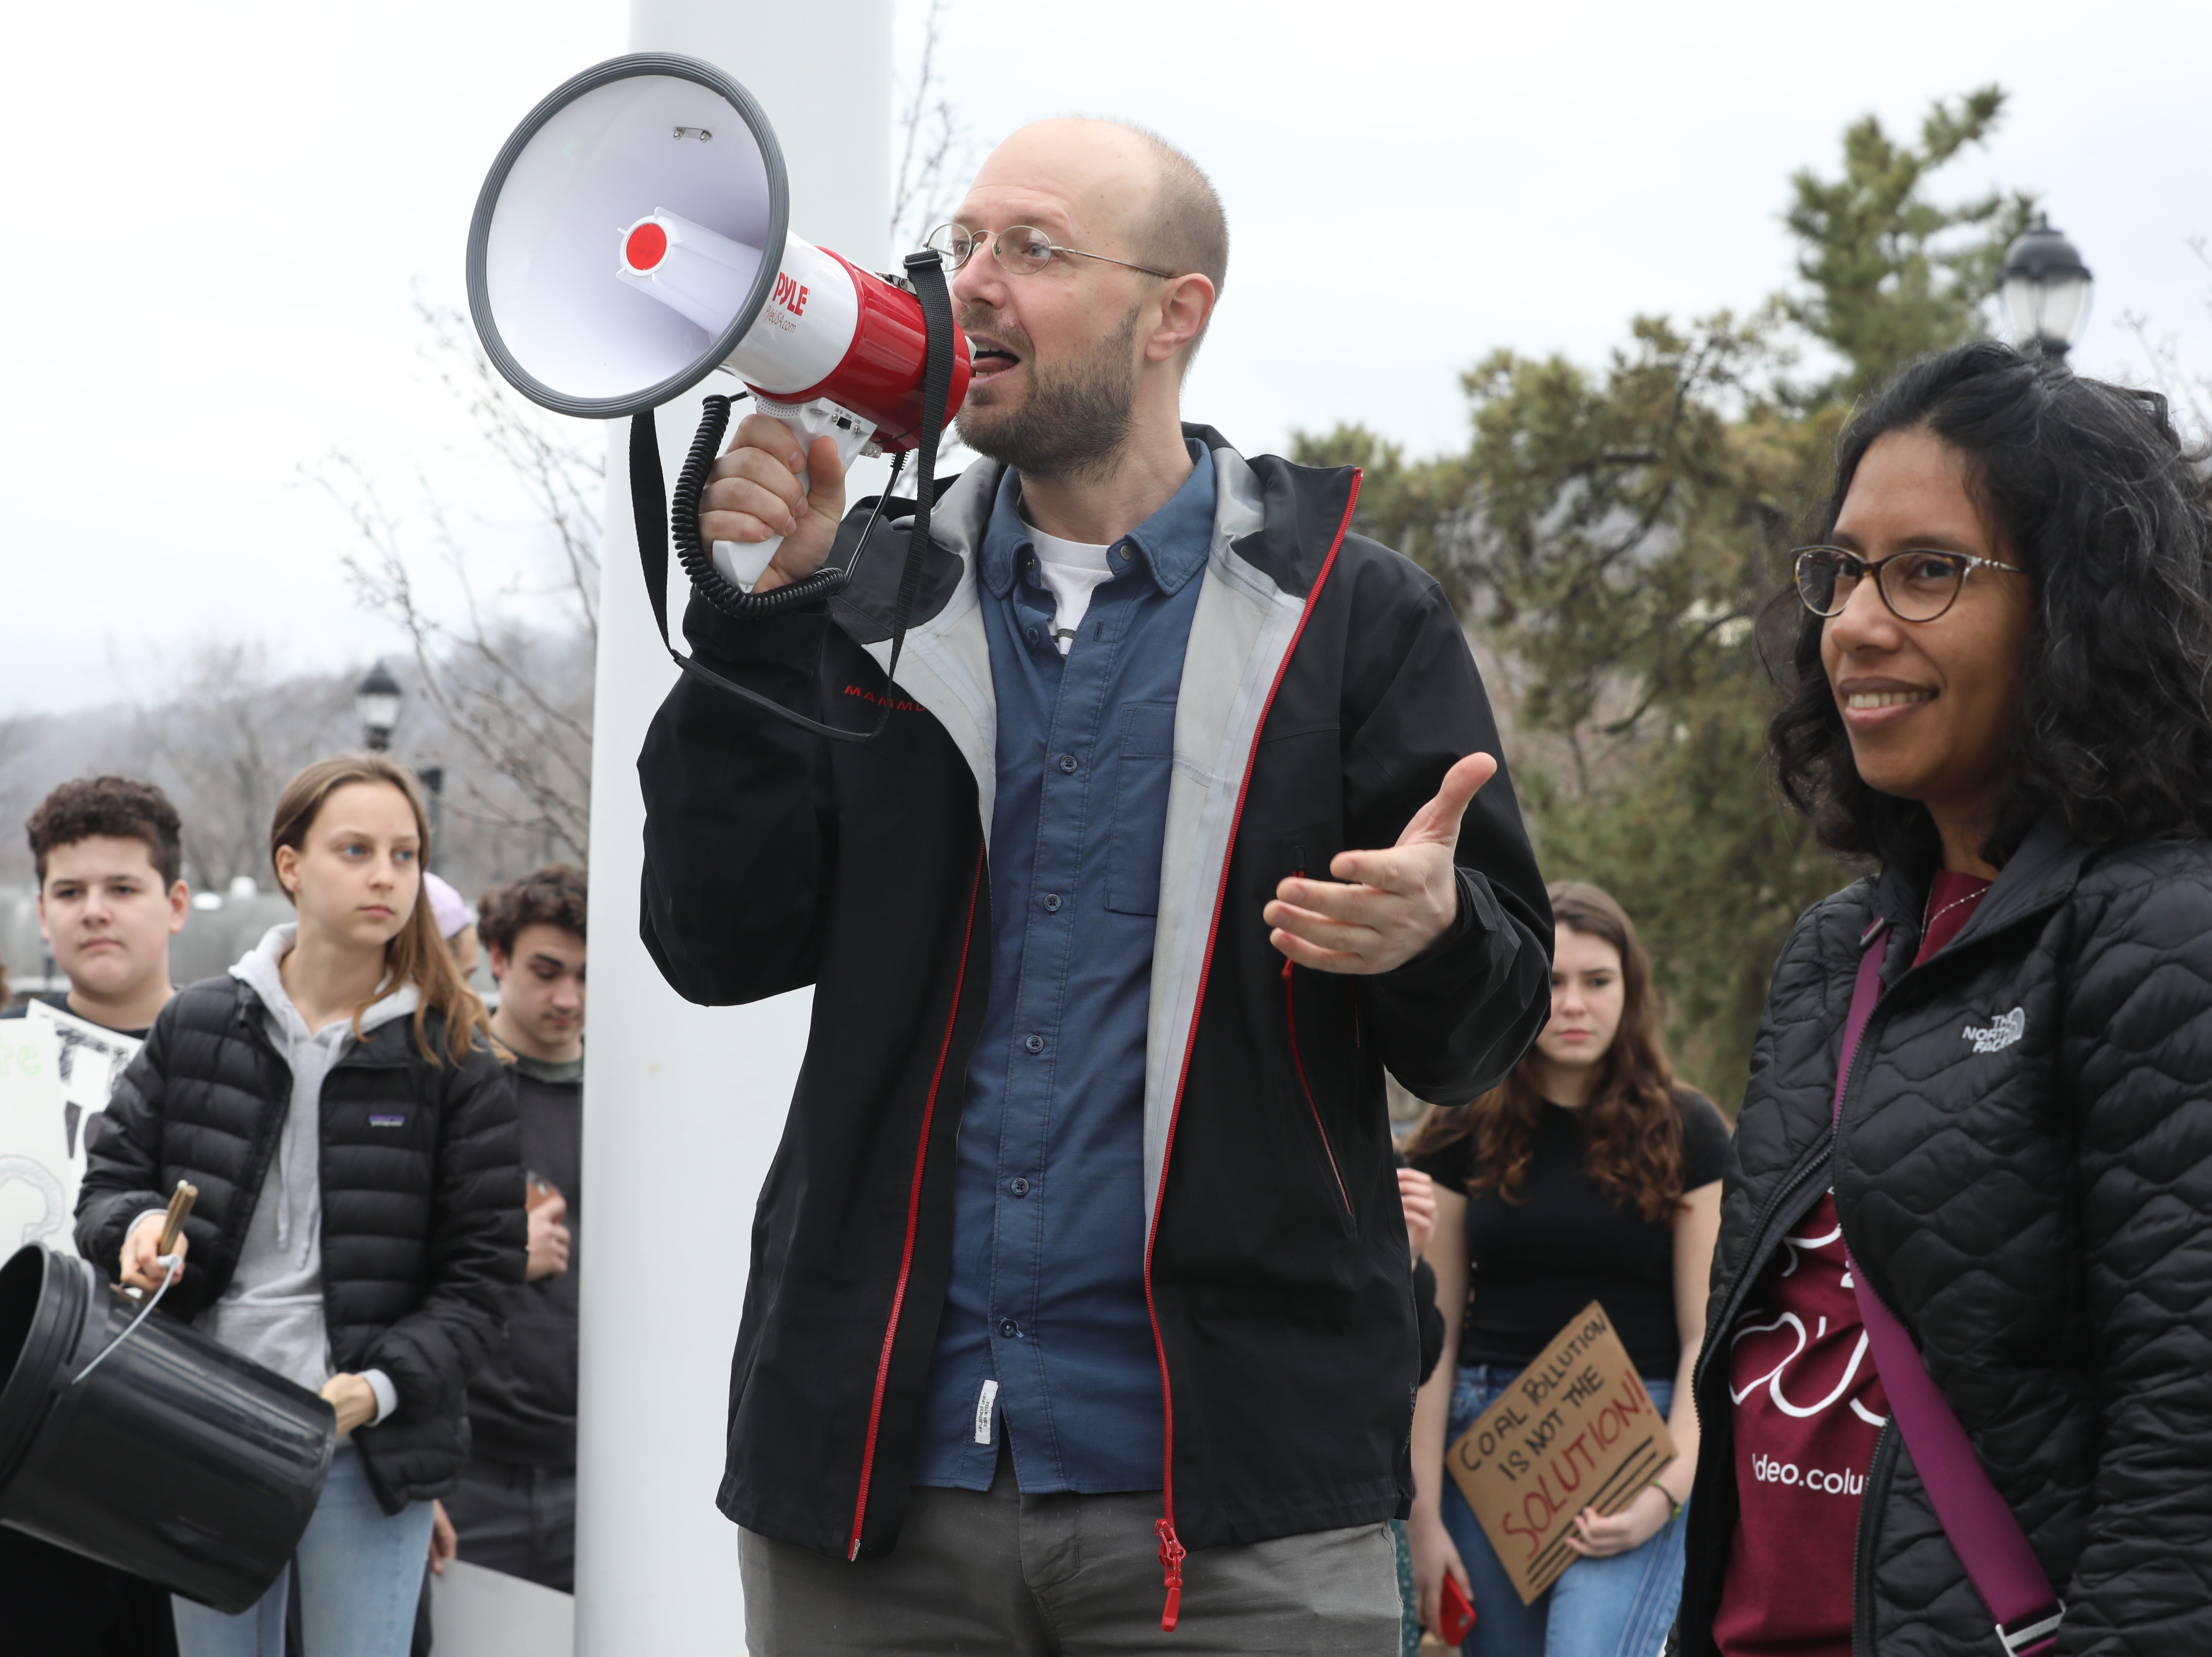 About 100Êstudents inÊRockland County joined high school and college students around the world today Friday, March 15, 2019, in walking out of school to protest global climate change and demand more aggressive policies to protect the environment.